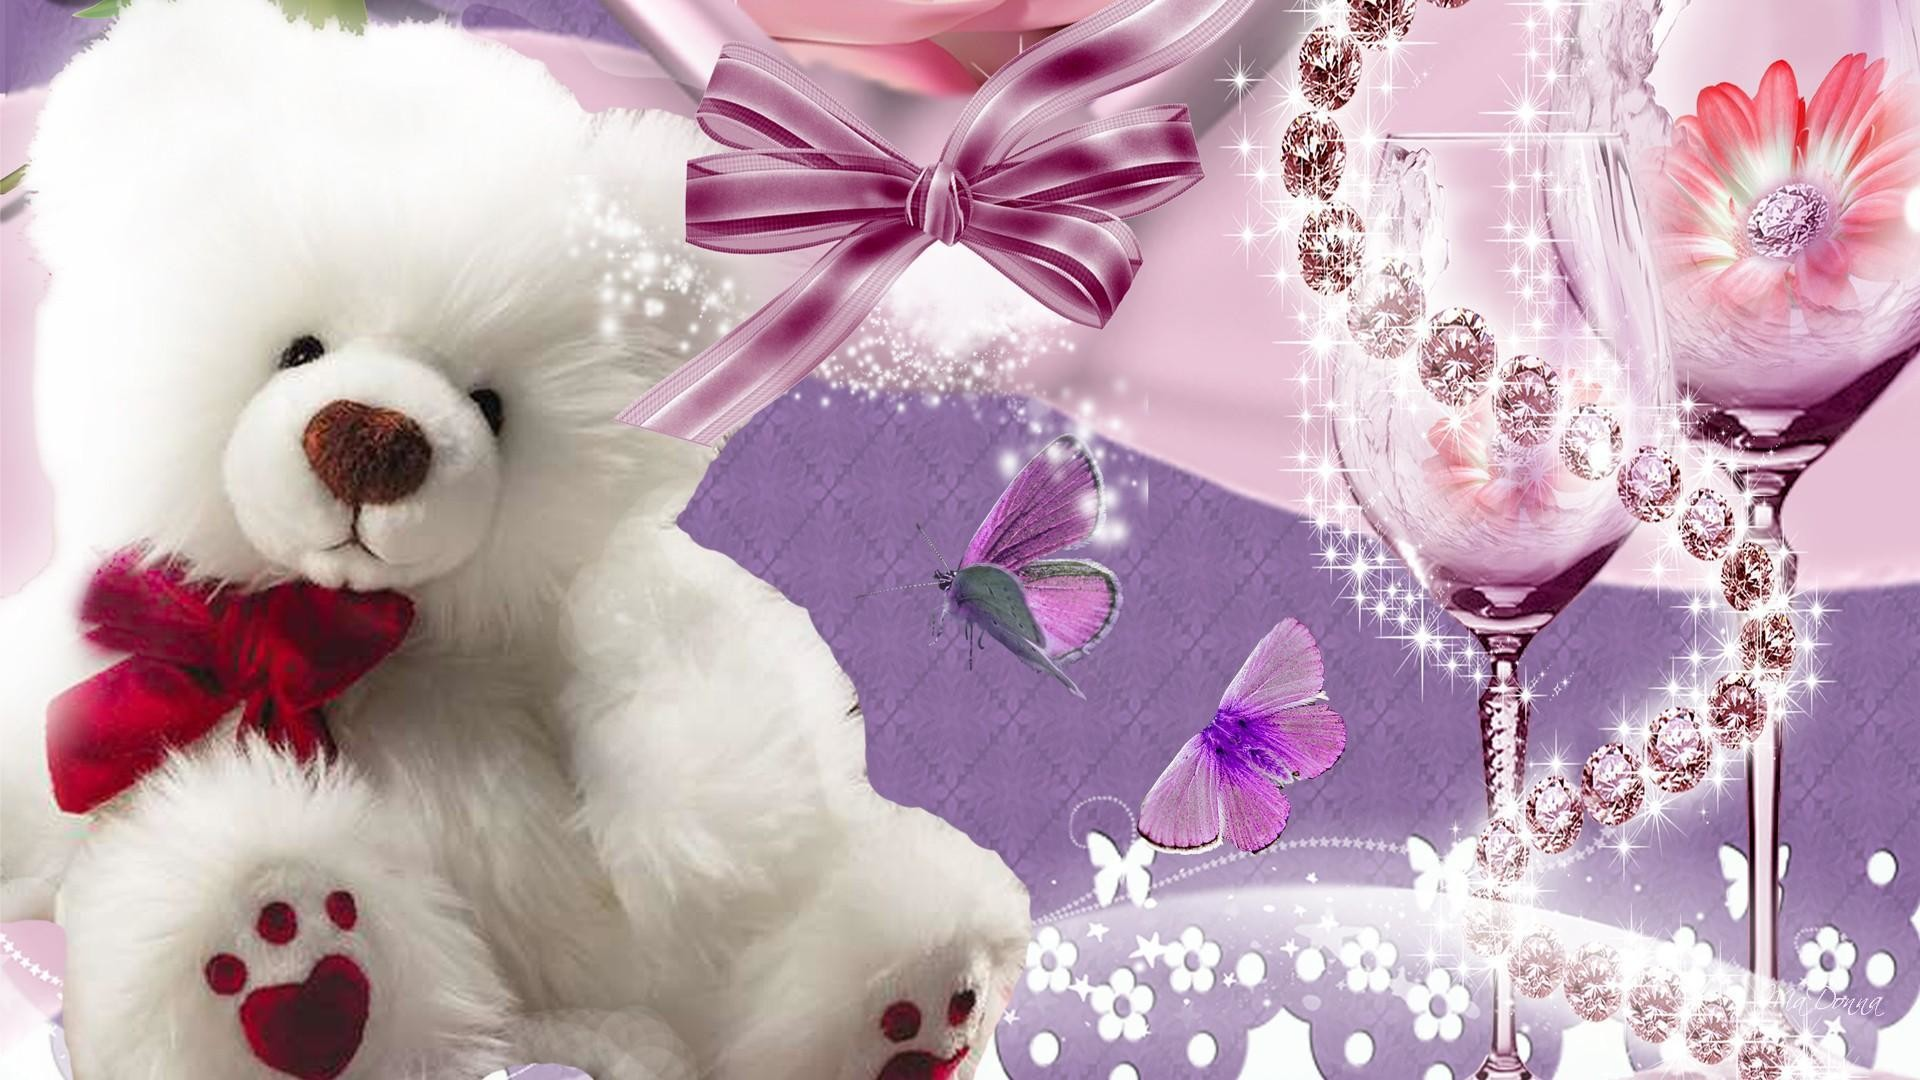 Love Teddy Bear Wallpapers 48 Images